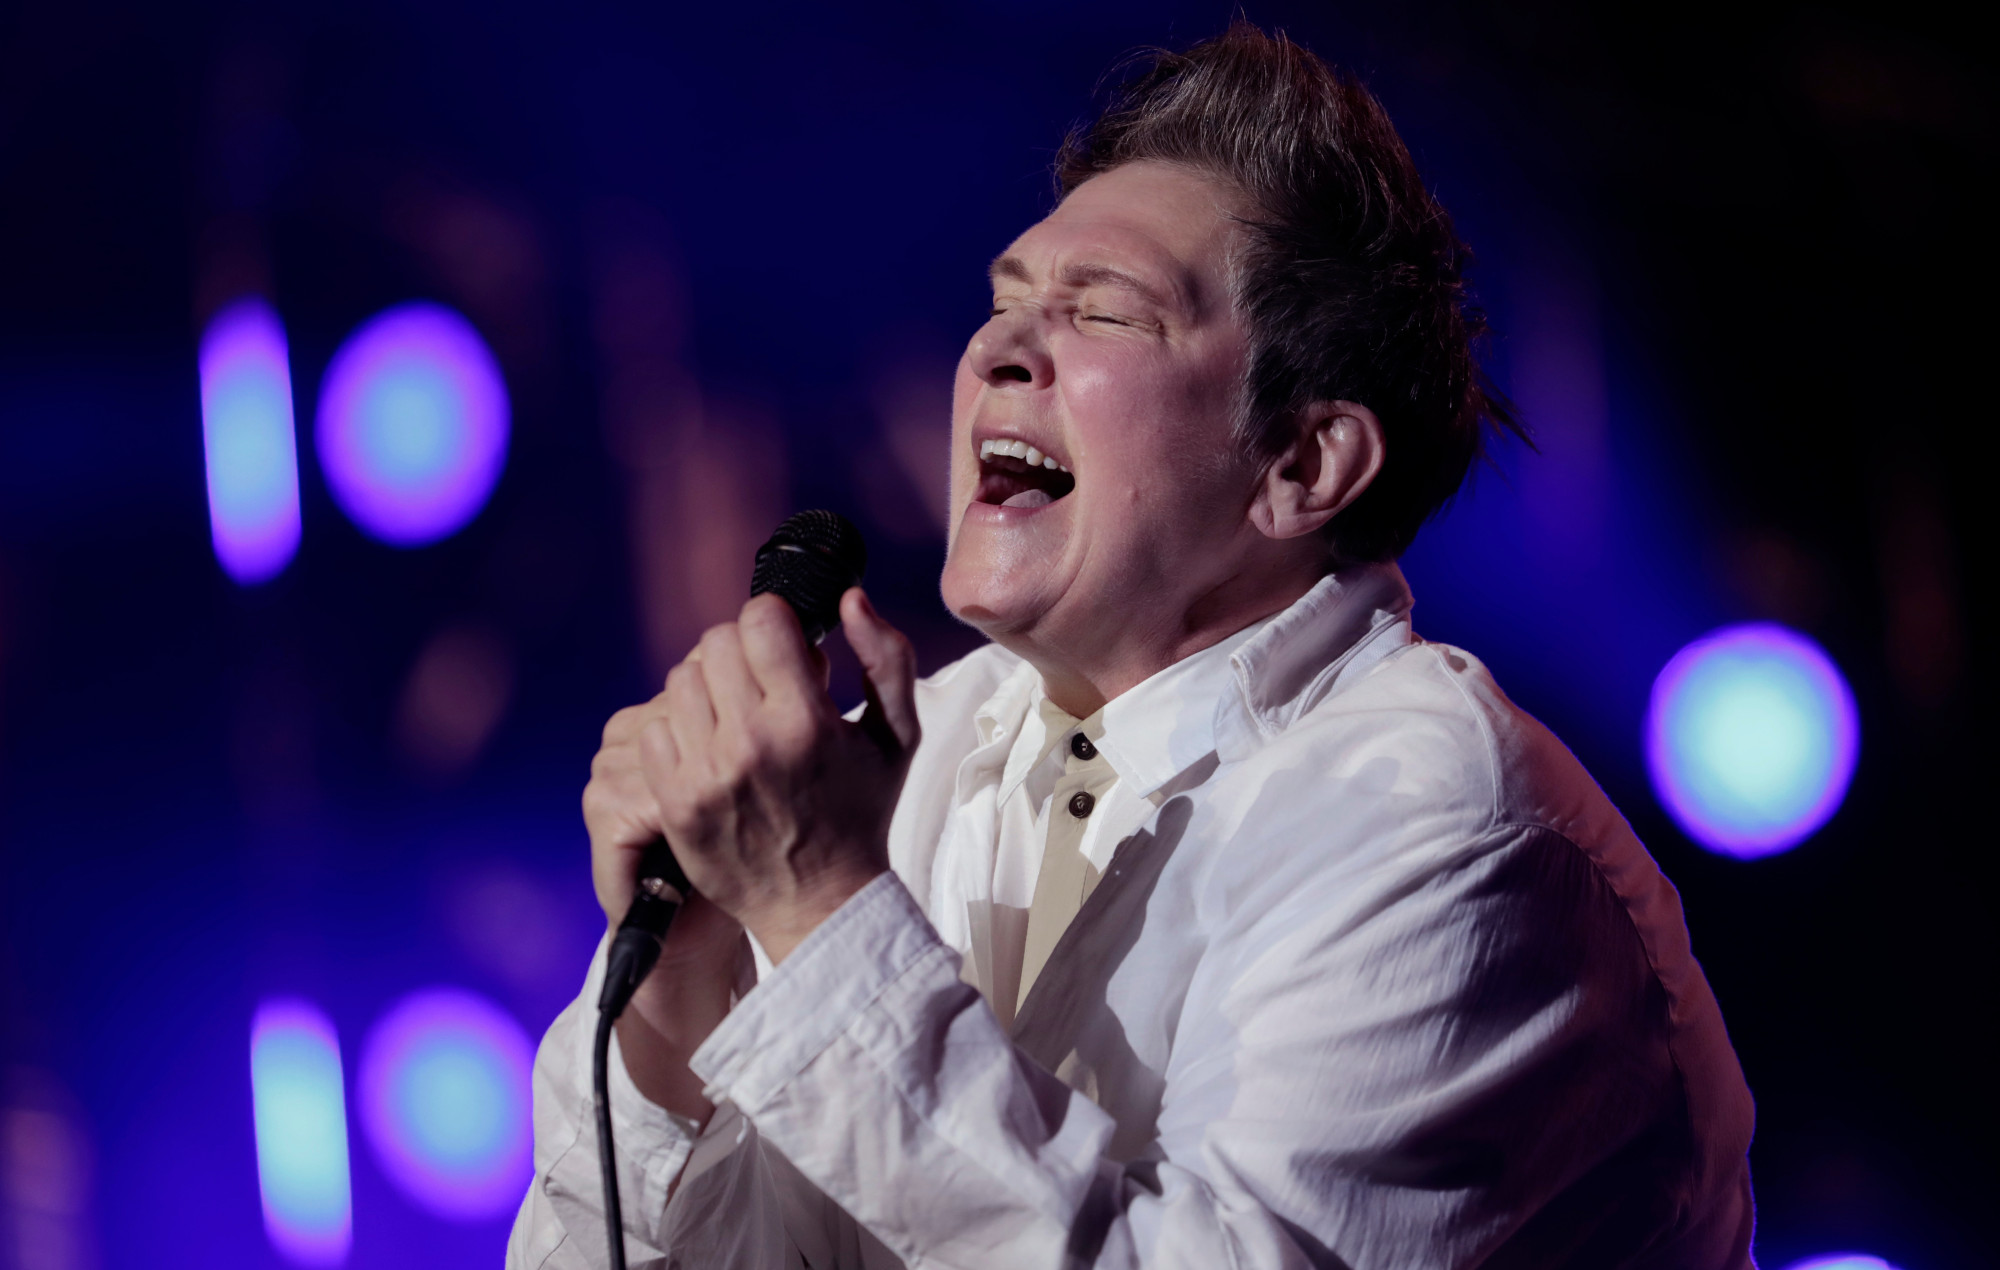 Watch k.d. lang sing 'Hallelujah' at Fire Fight Australia | NME Australia